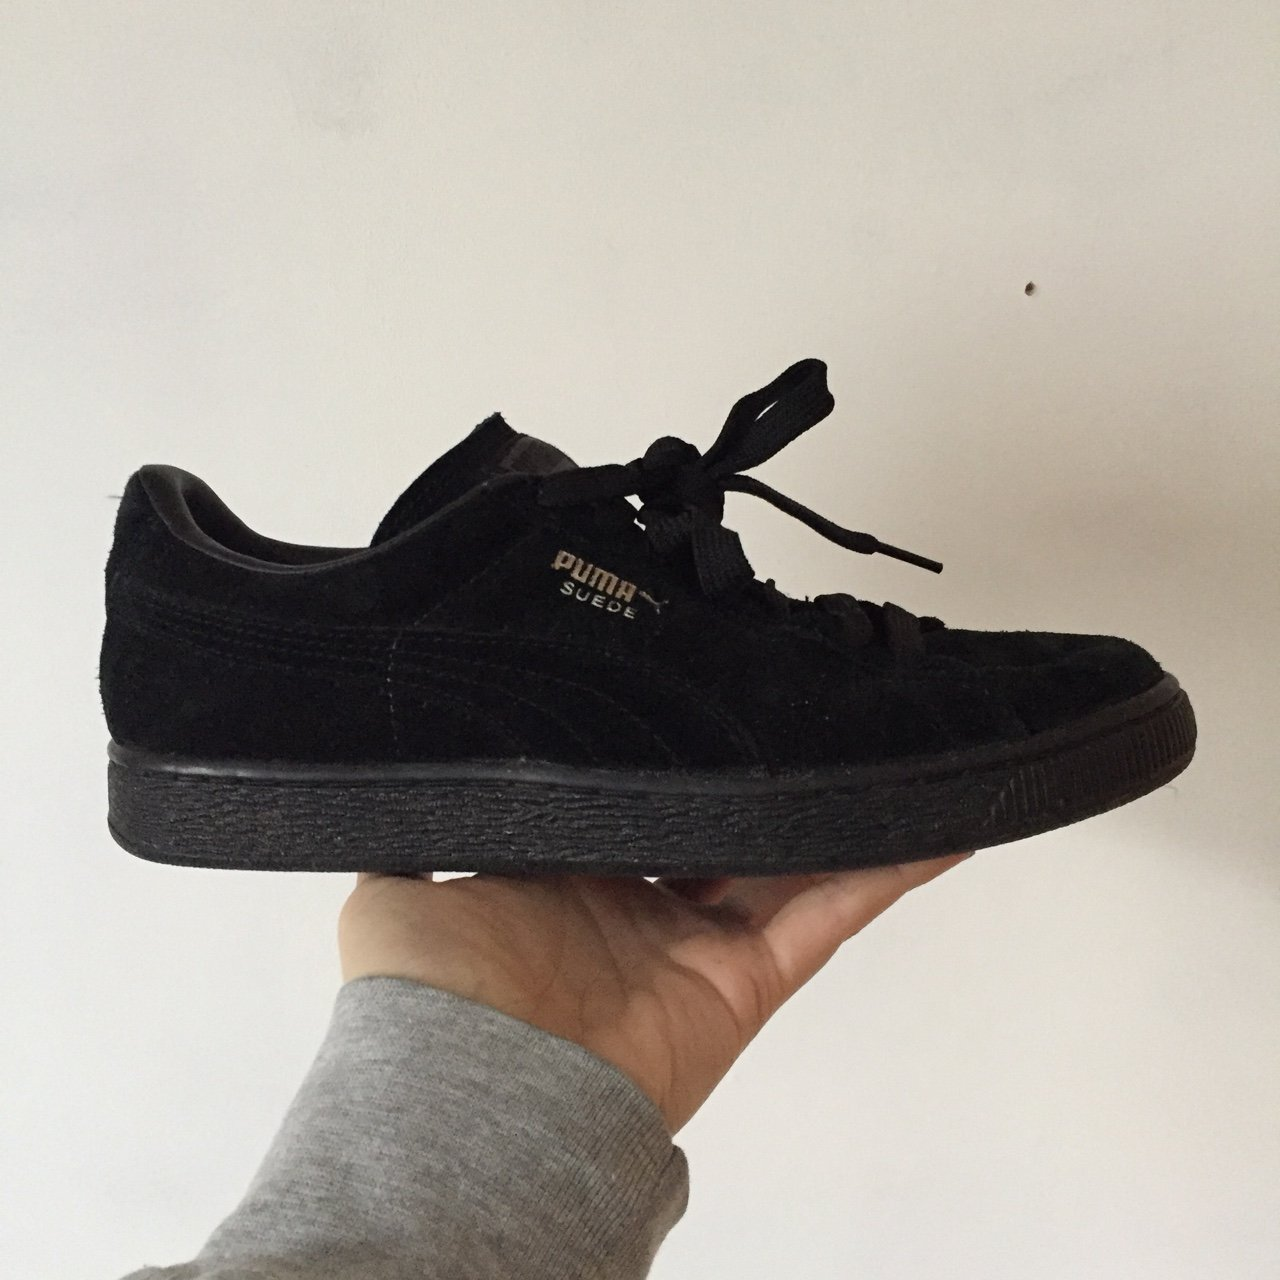 0ff2a1eeae VERY fresh Puma Suede black trainers! Love these shoes but - Depop